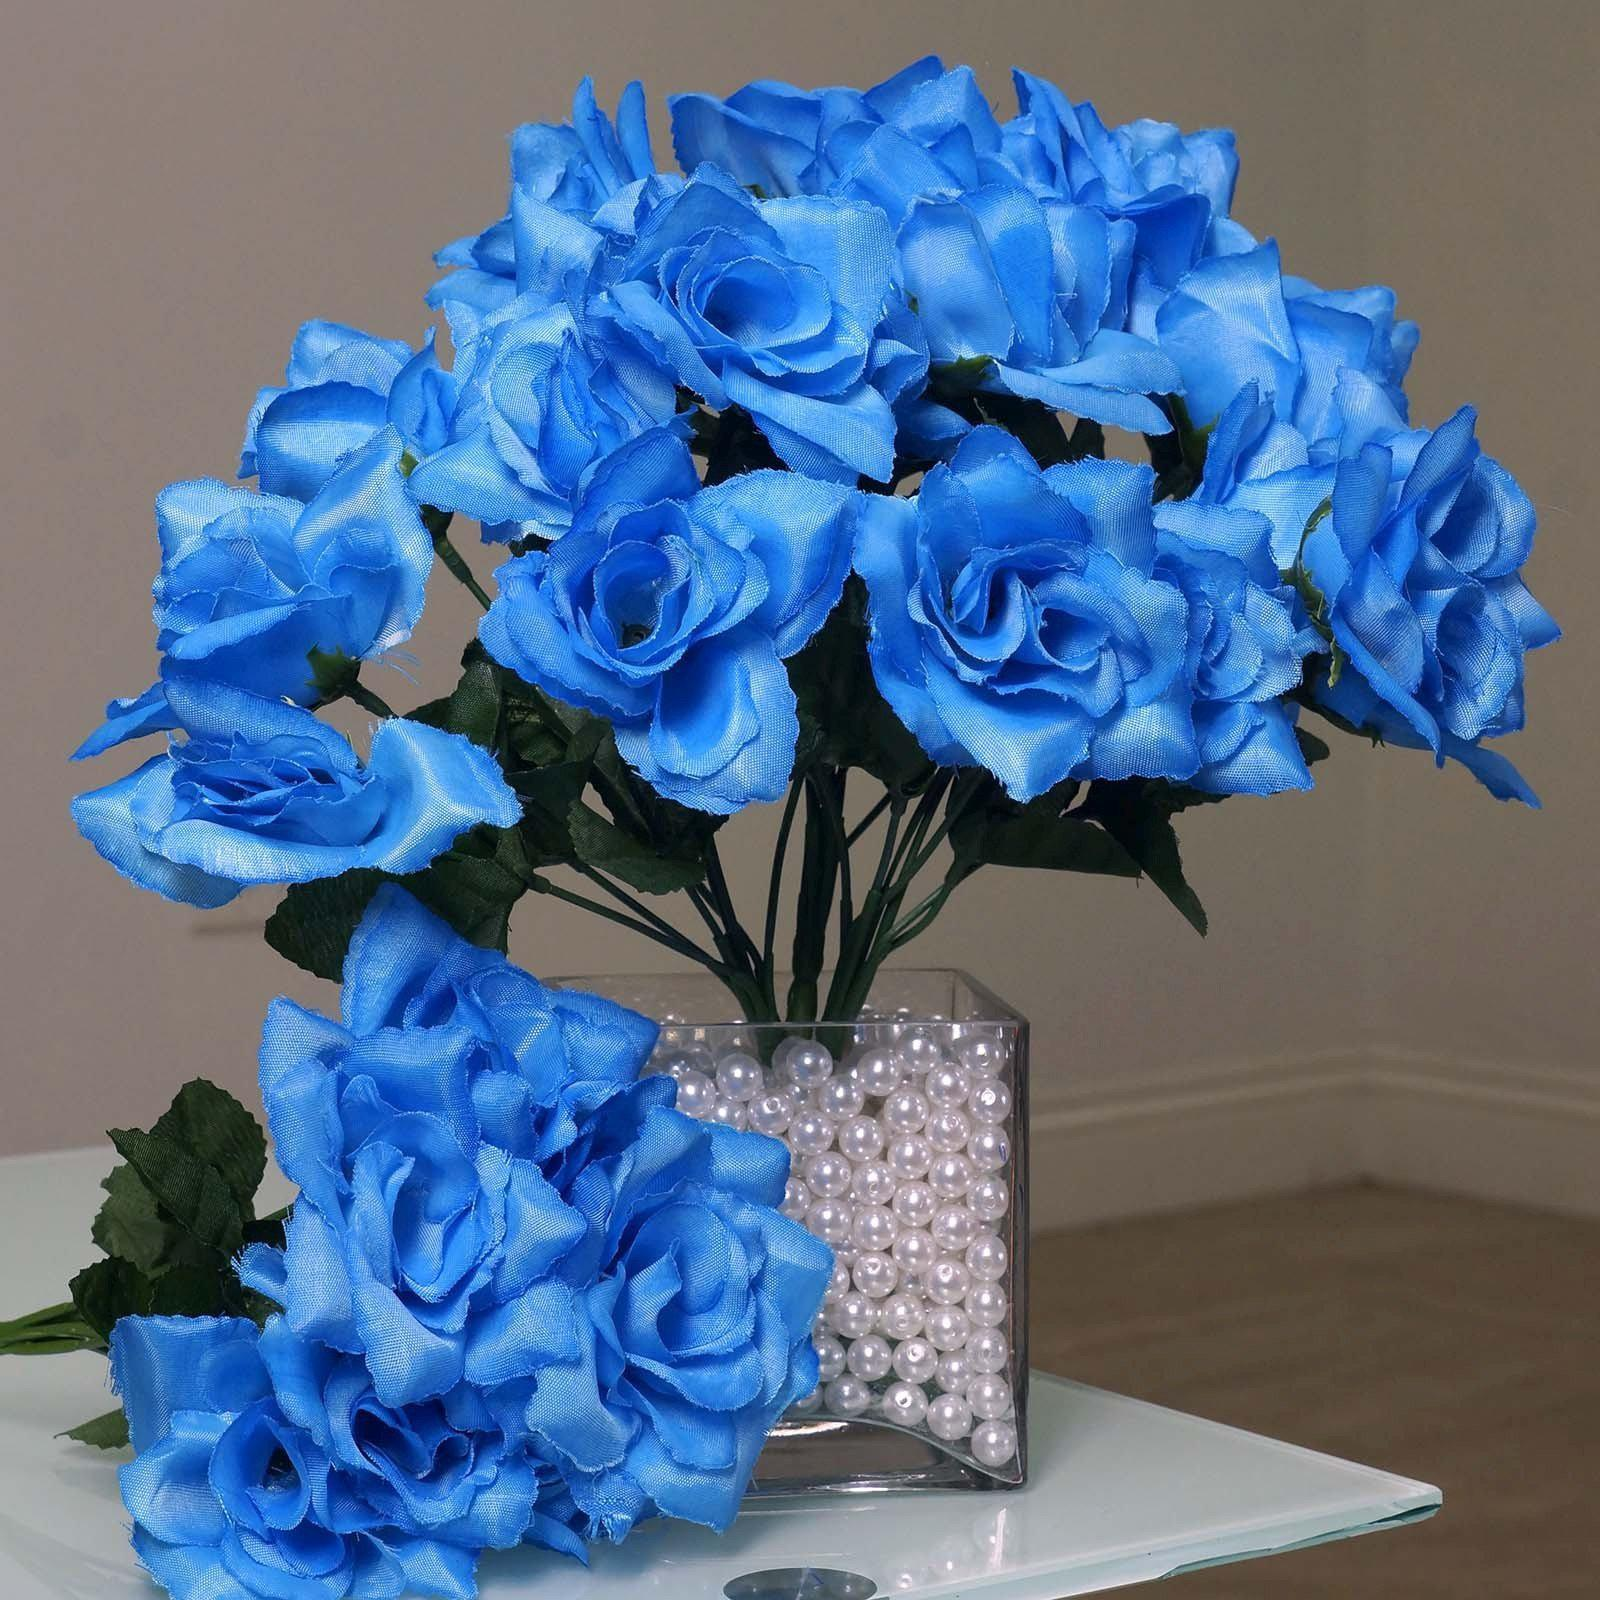 12 Bushes 84 Pcs Blue Artificial Silk Rose Flowers With Green Leaves